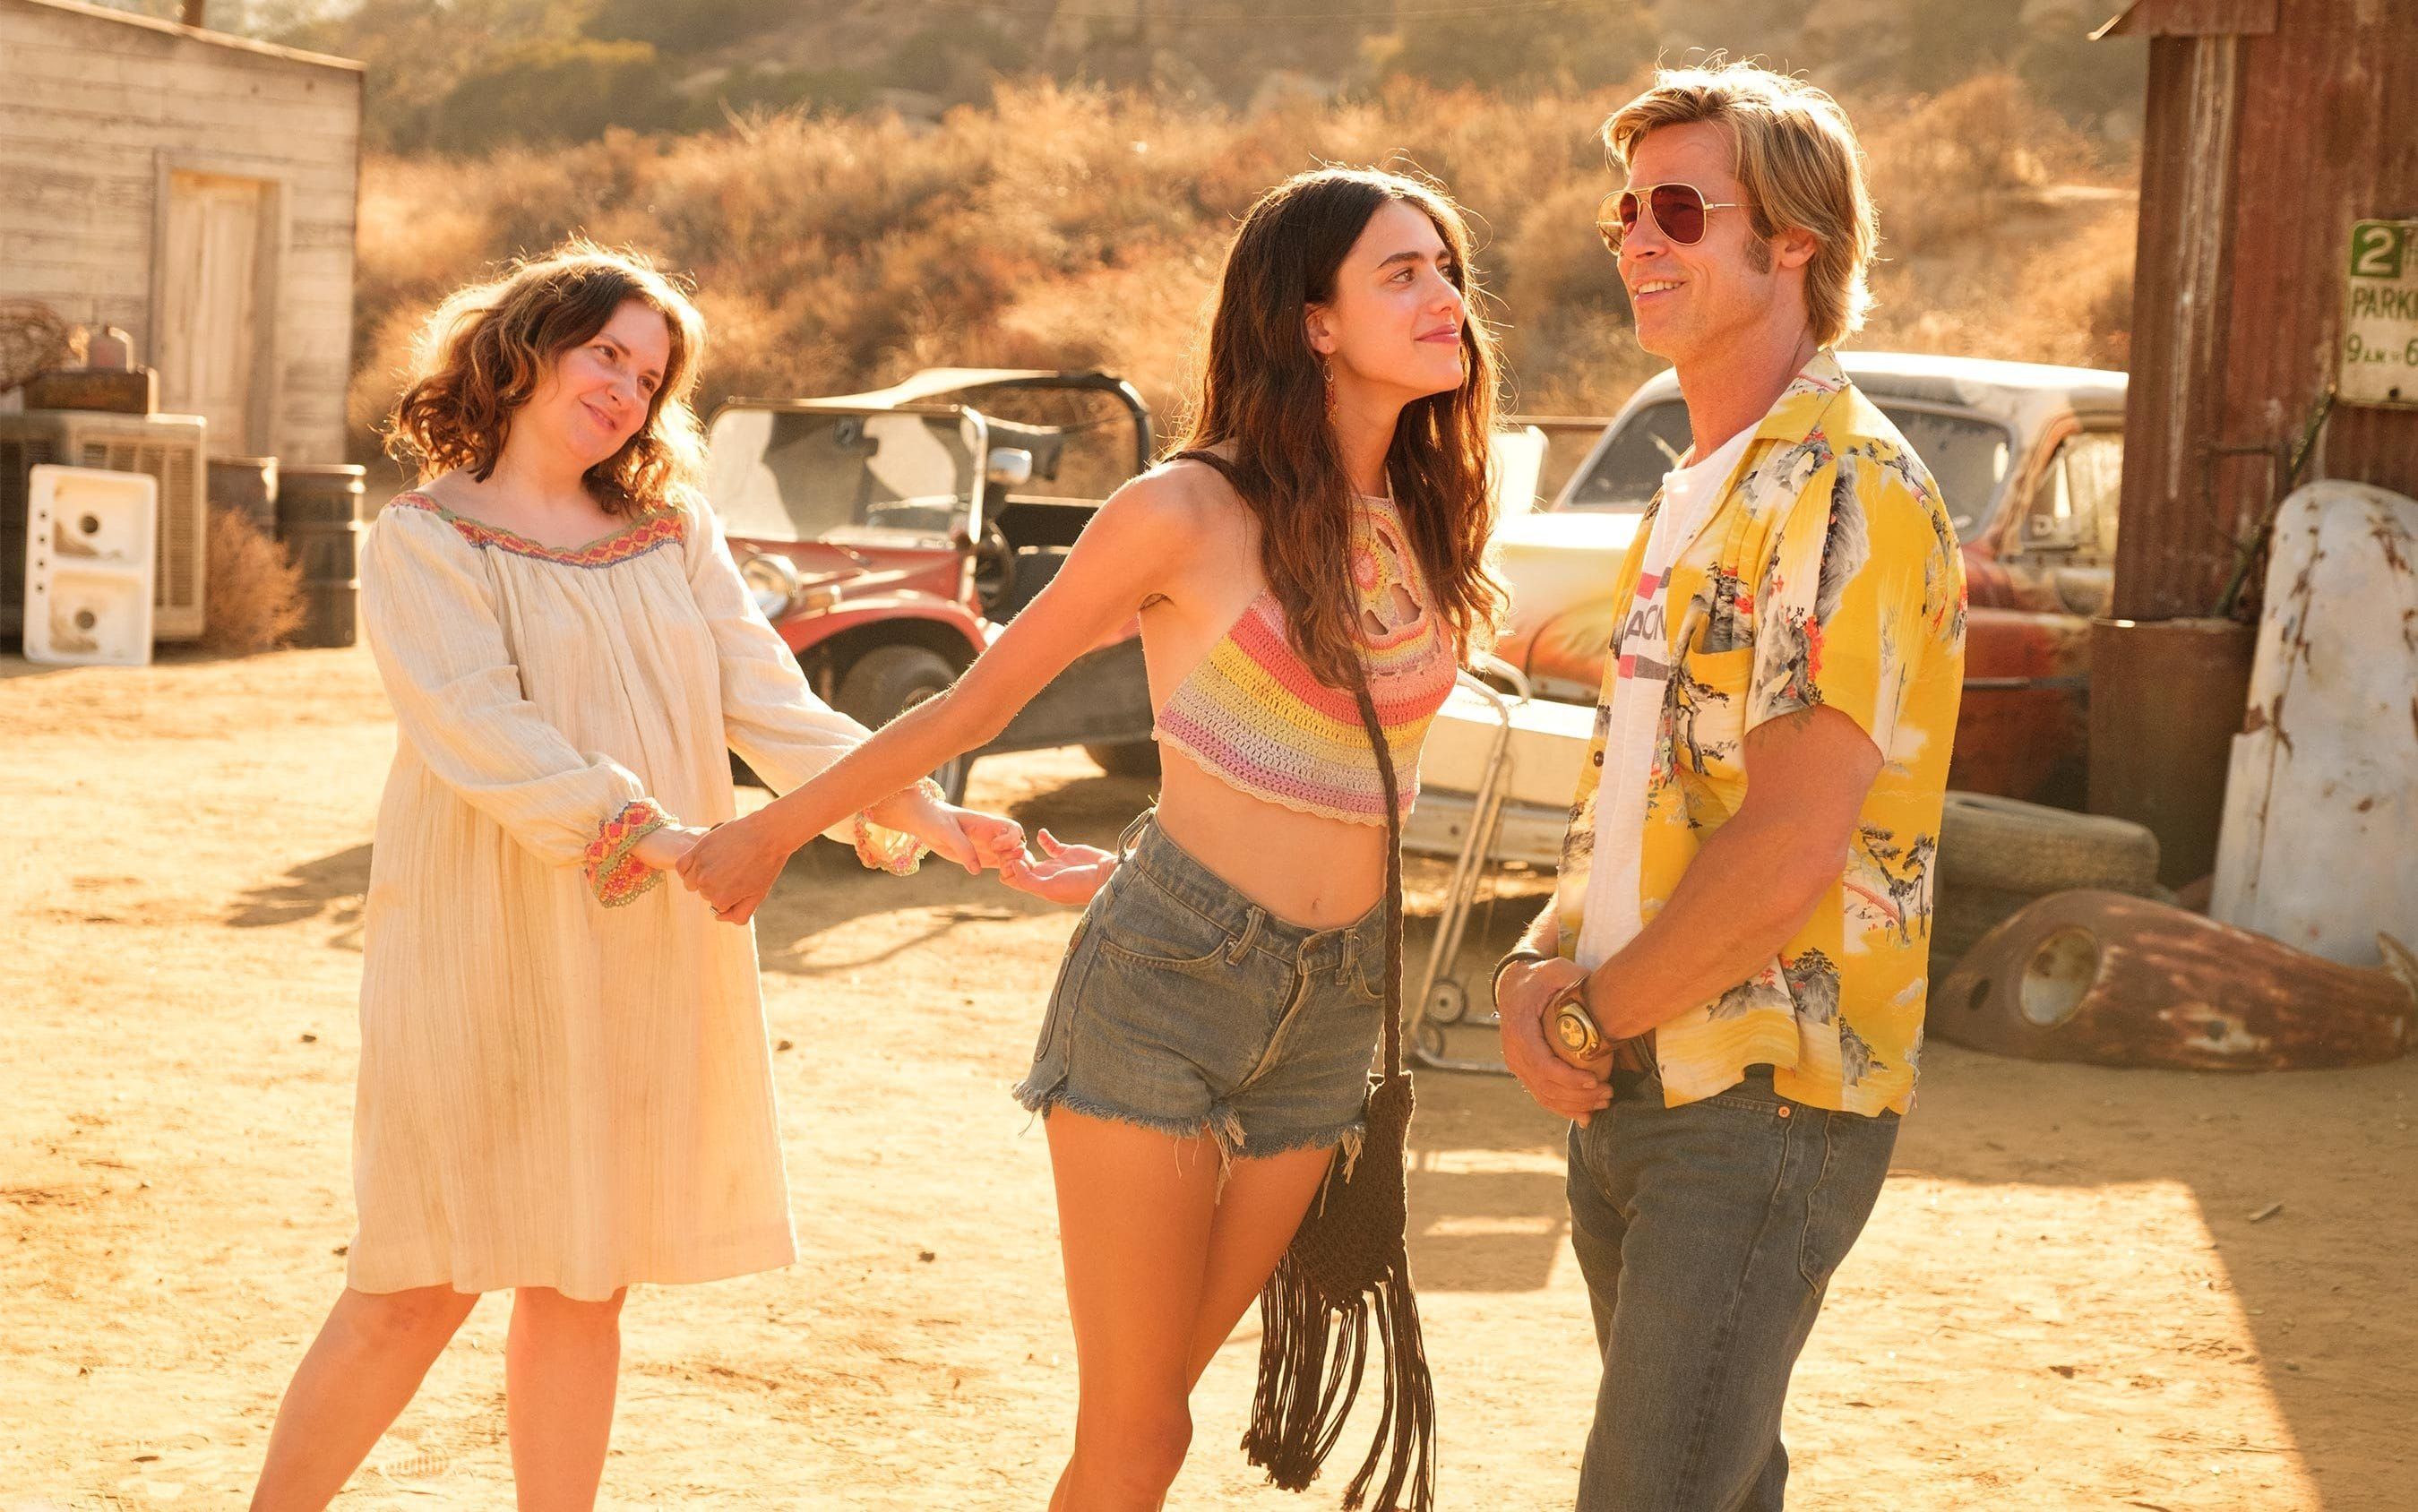 thời-trang-trong-phim-once-upon-a-time-in-hollywood-hippy